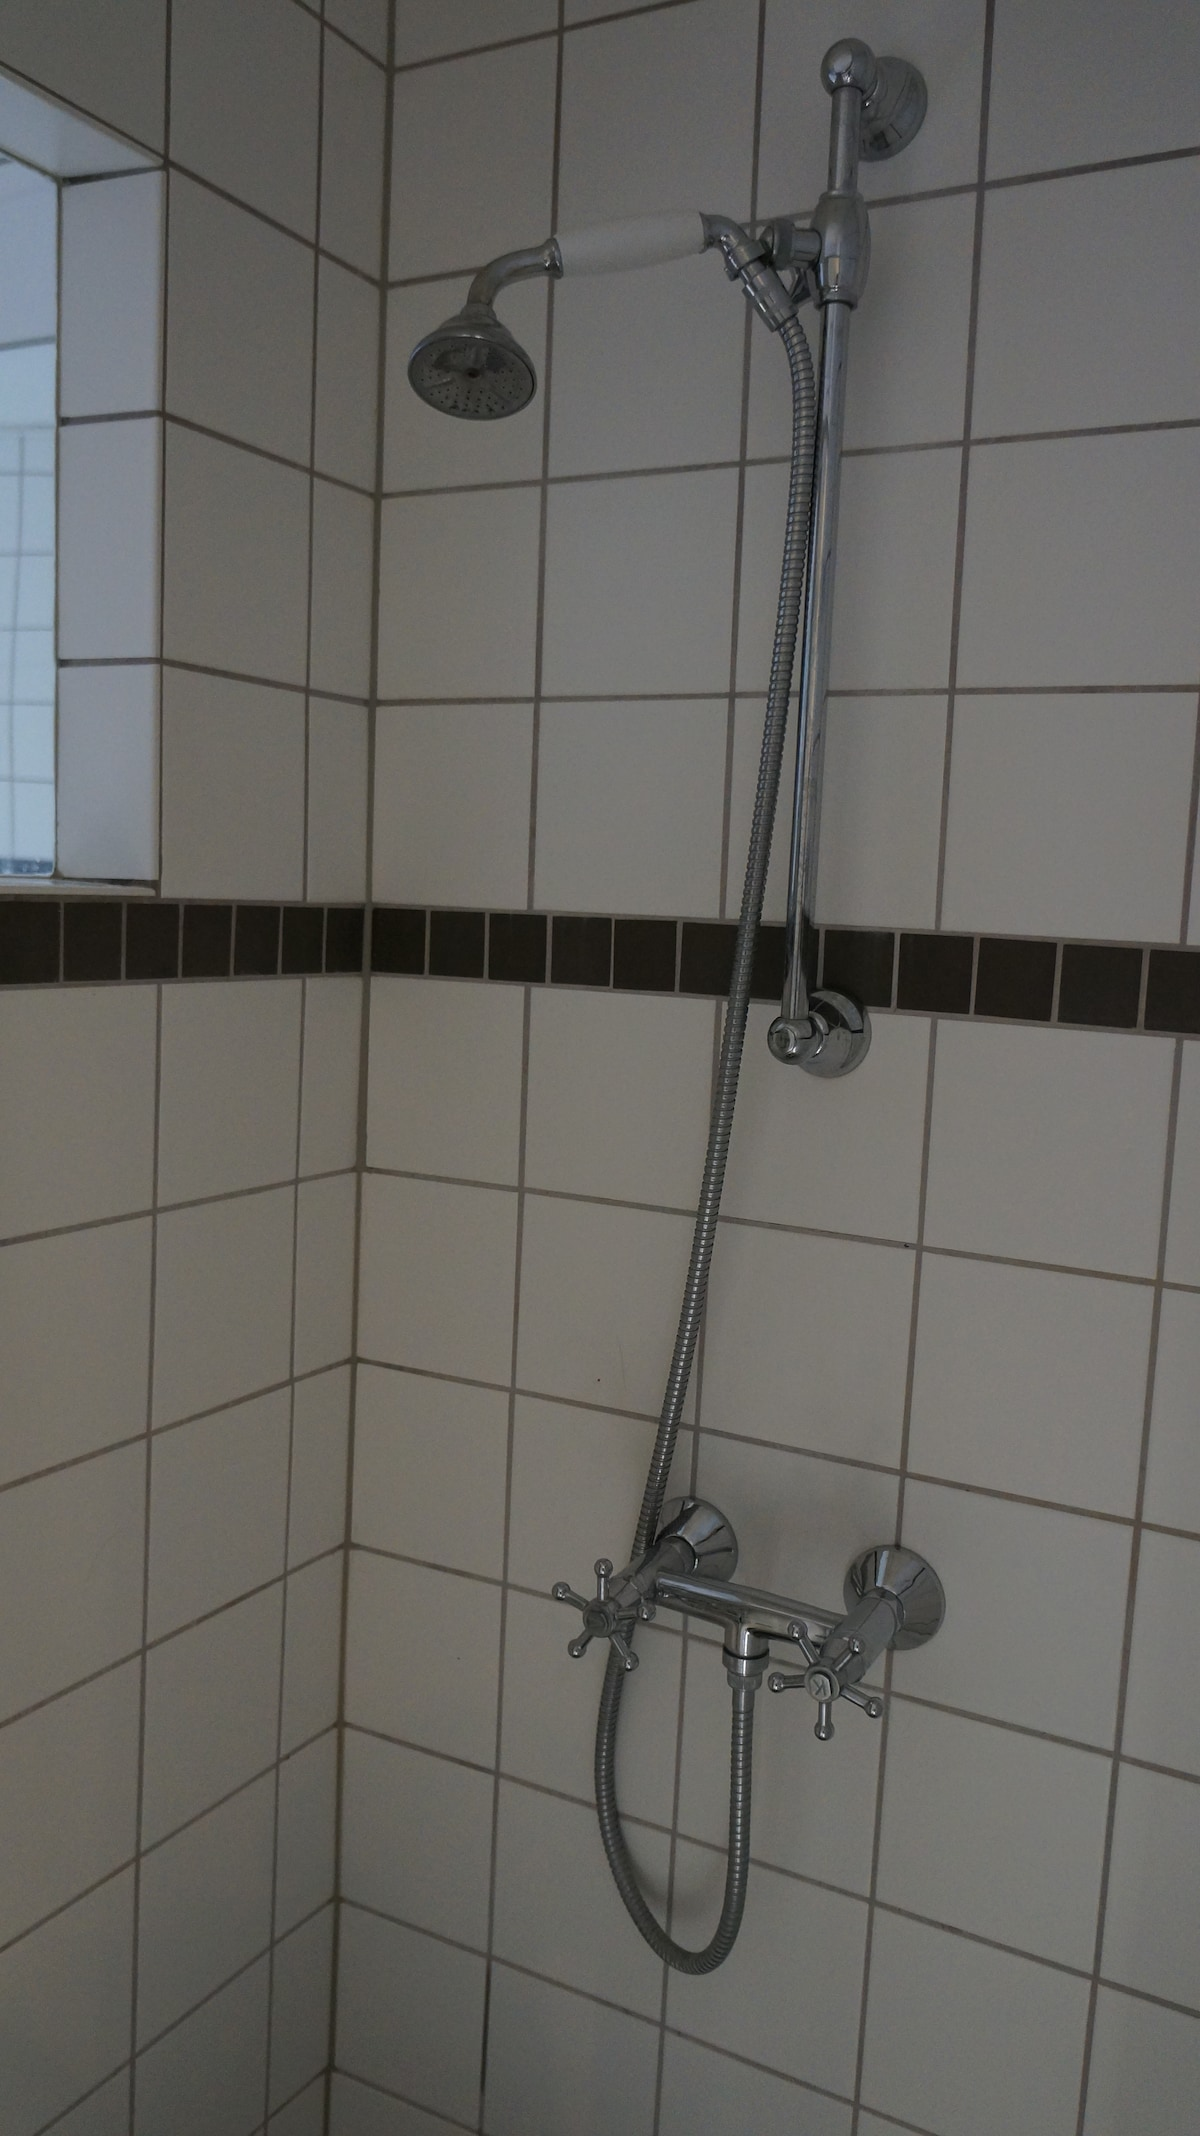 Shower section with perfect lighting and restoration in accordance with the age of the building